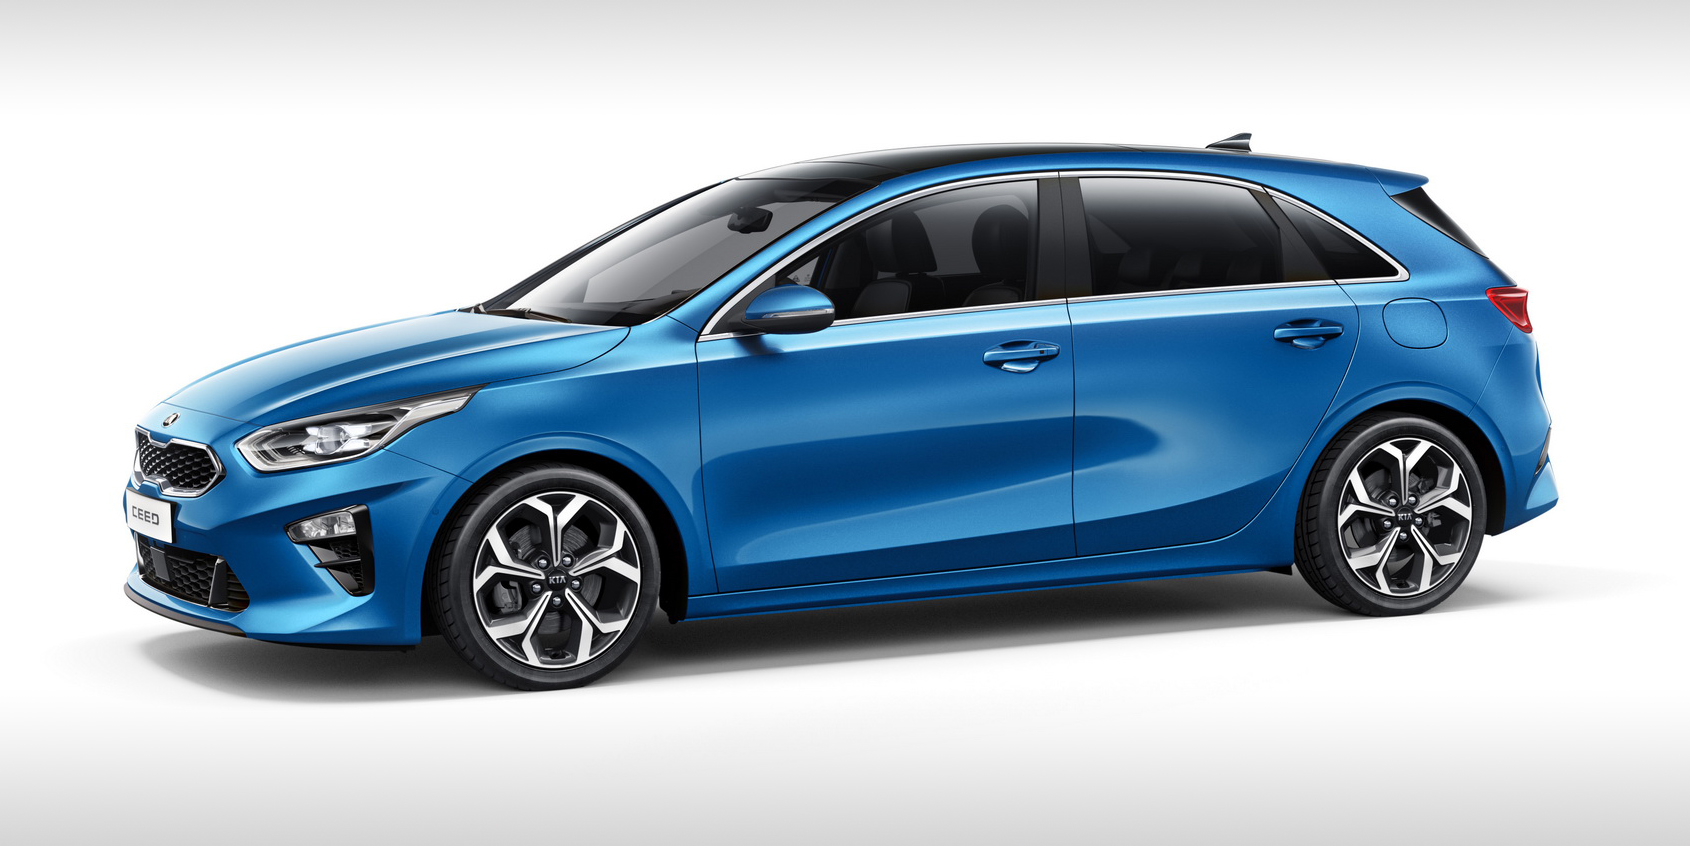 2018 kia ceed revealed for geneva photos. Black Bedroom Furniture Sets. Home Design Ideas